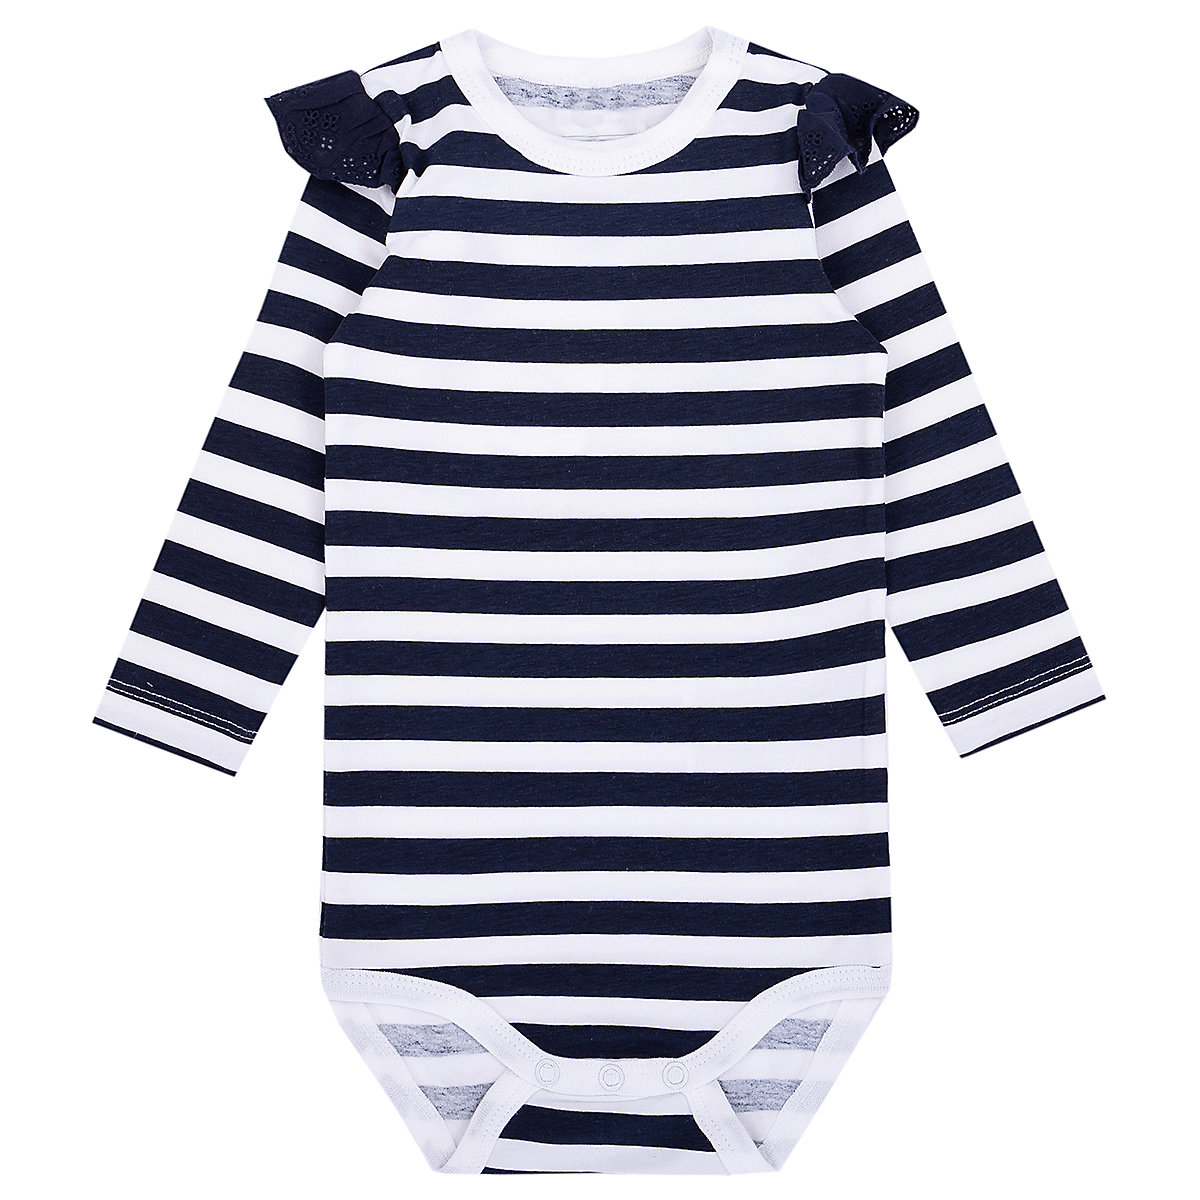 NAME IT Bodysuits 10626727 Baby Clothing Bodysuit For Boys And Girls